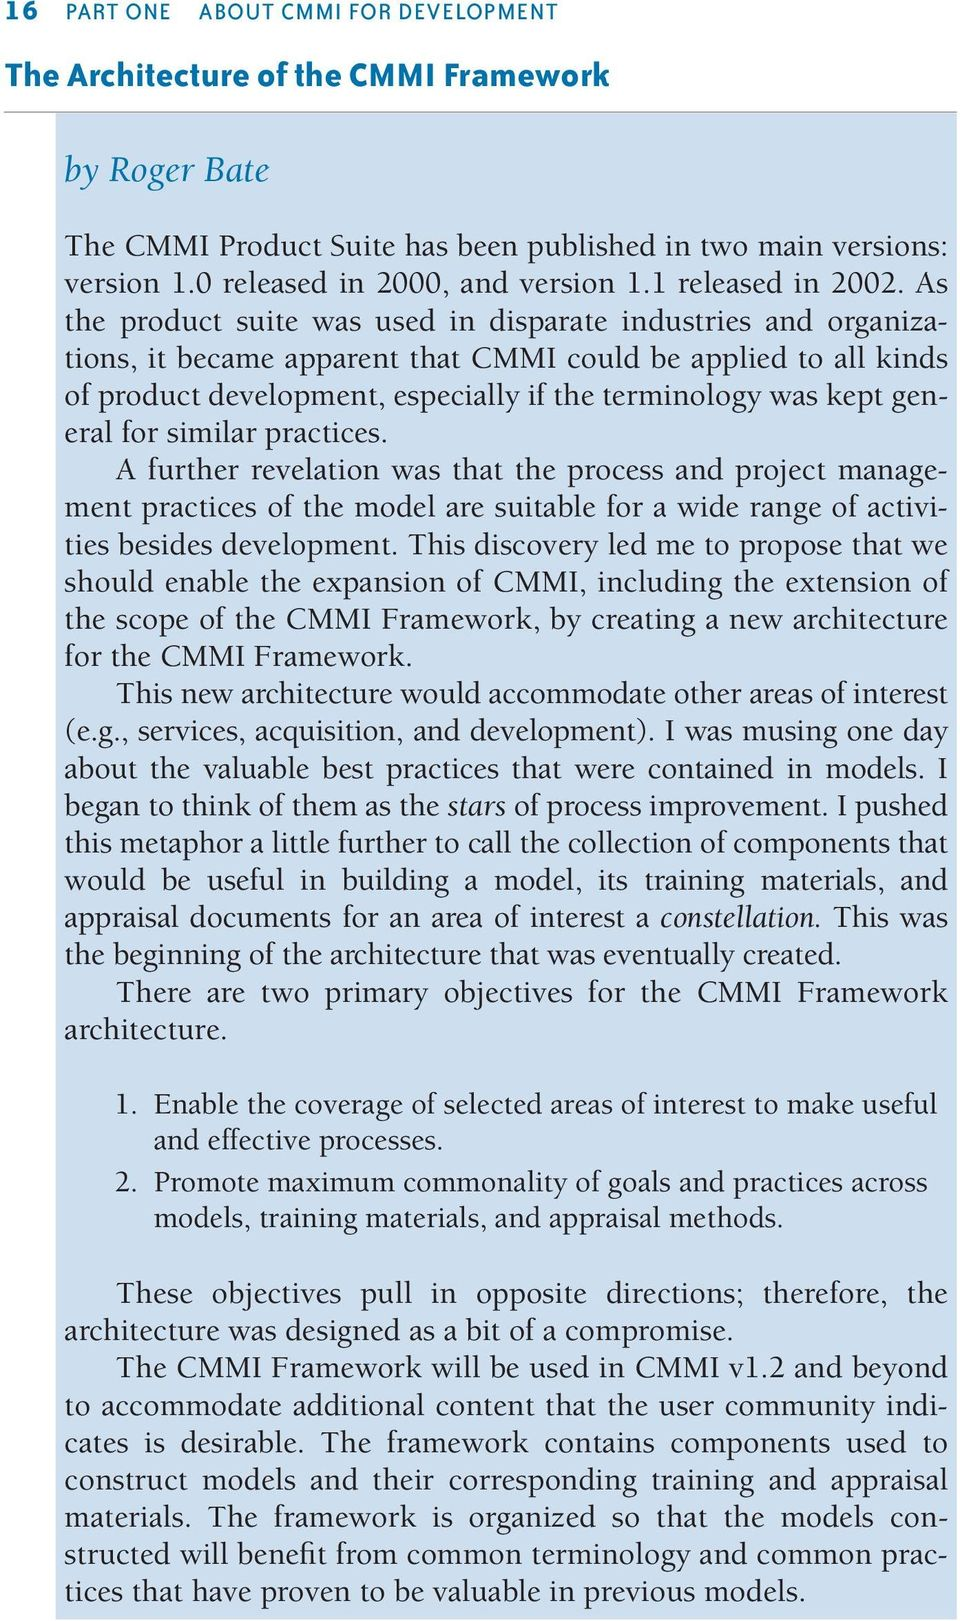 As the product suite was used in disparate industries and organizations, it became apparent that CMMI could be applied to all kinds of product development, especially if the terminology was kept